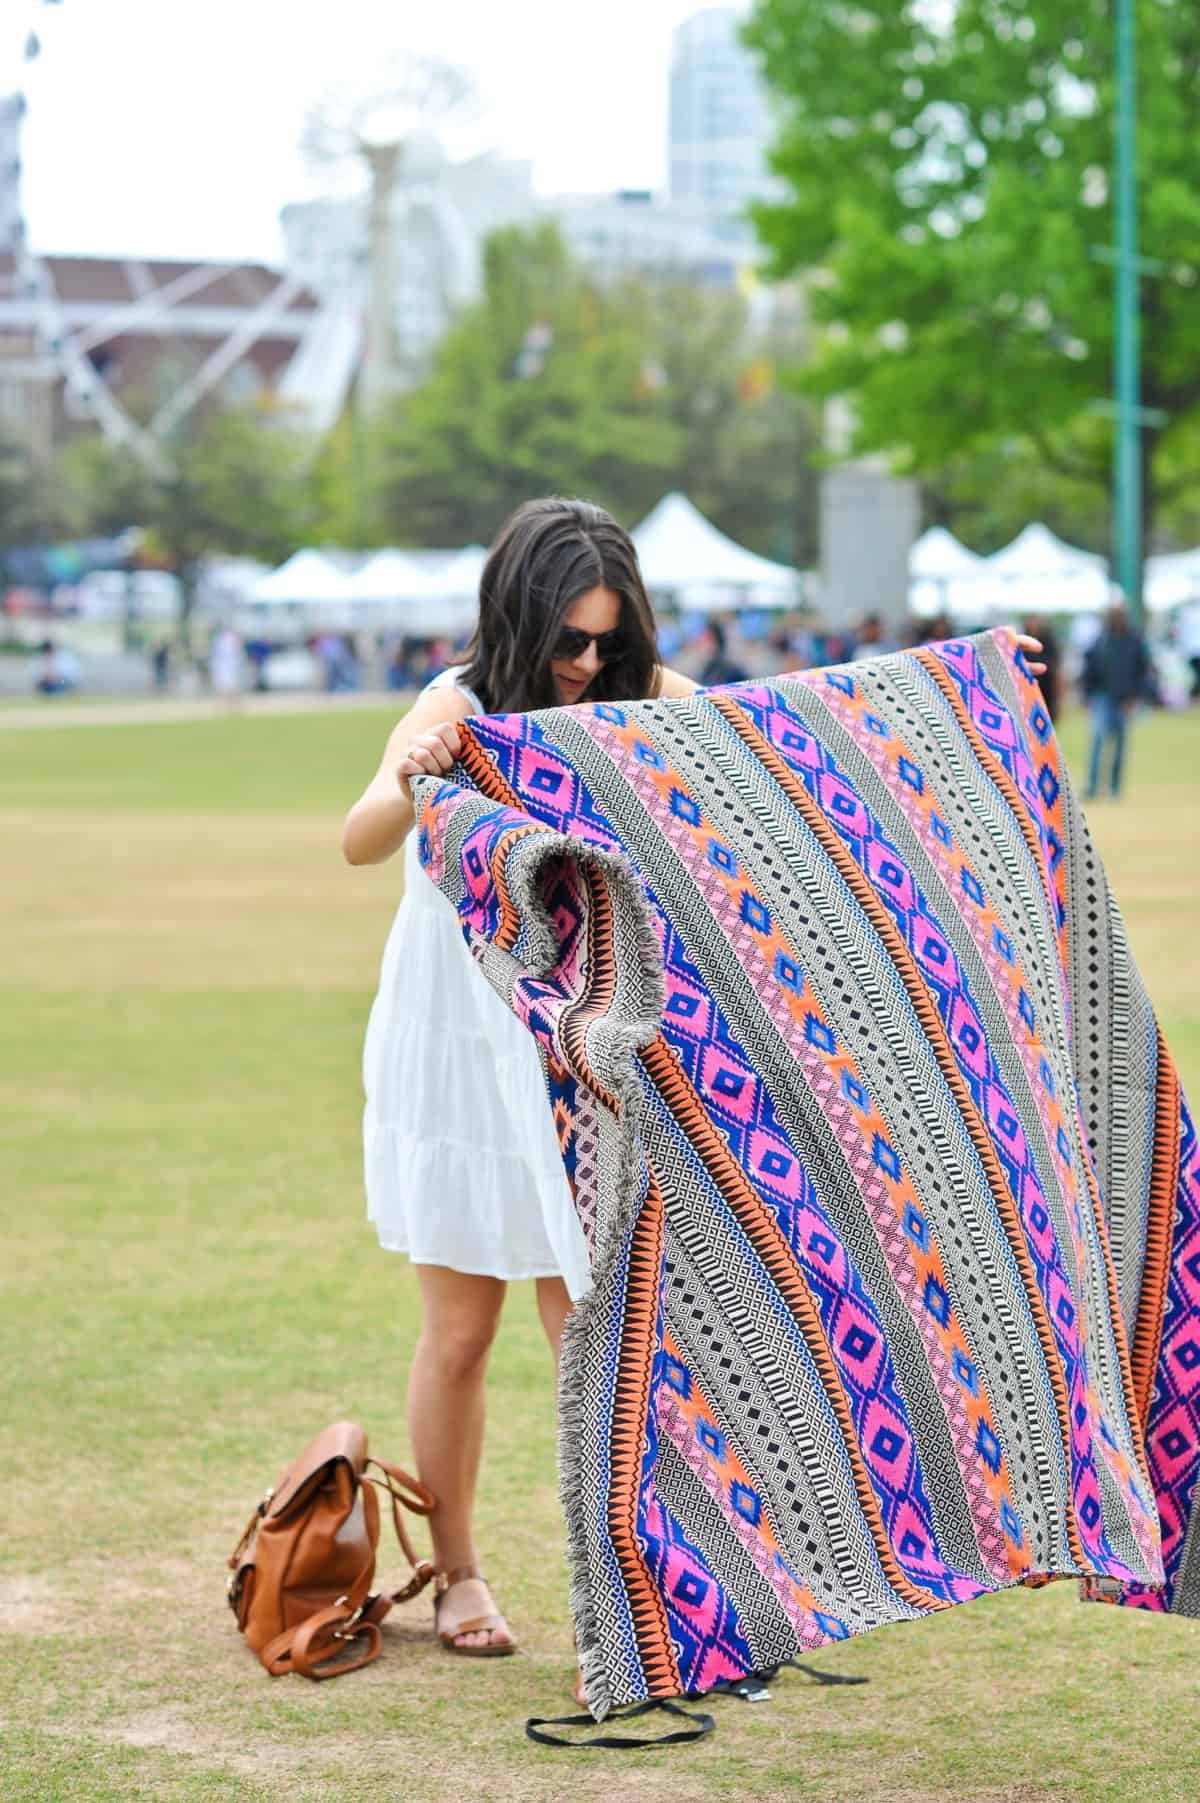 picnic blanket ideas, essentials for a summer picnic - My Style Vita @mystylevita